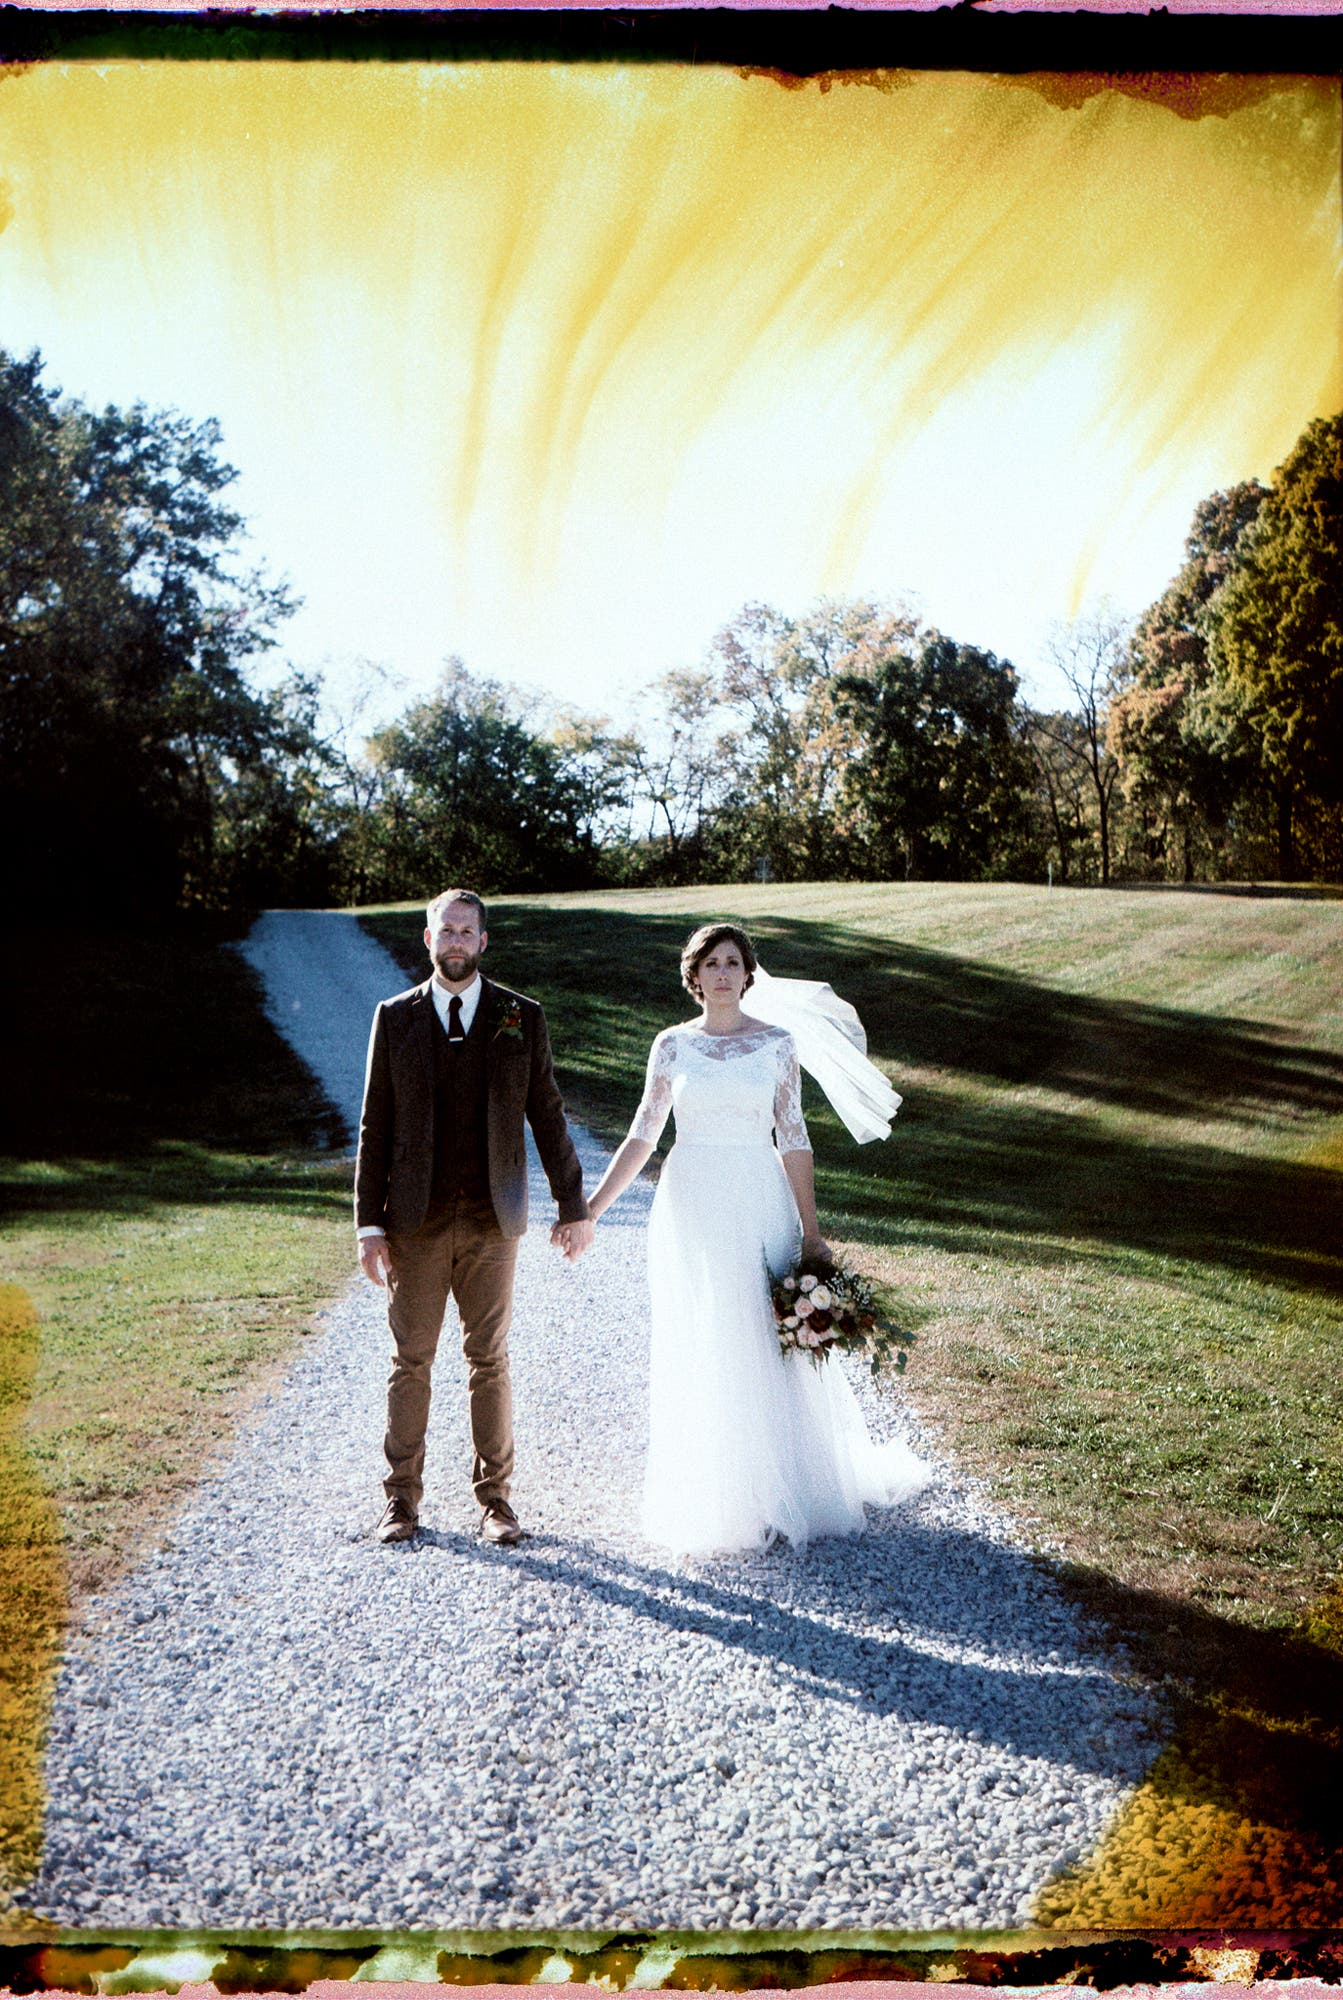 Nick Collingwood: Instant Film Wedding Photography